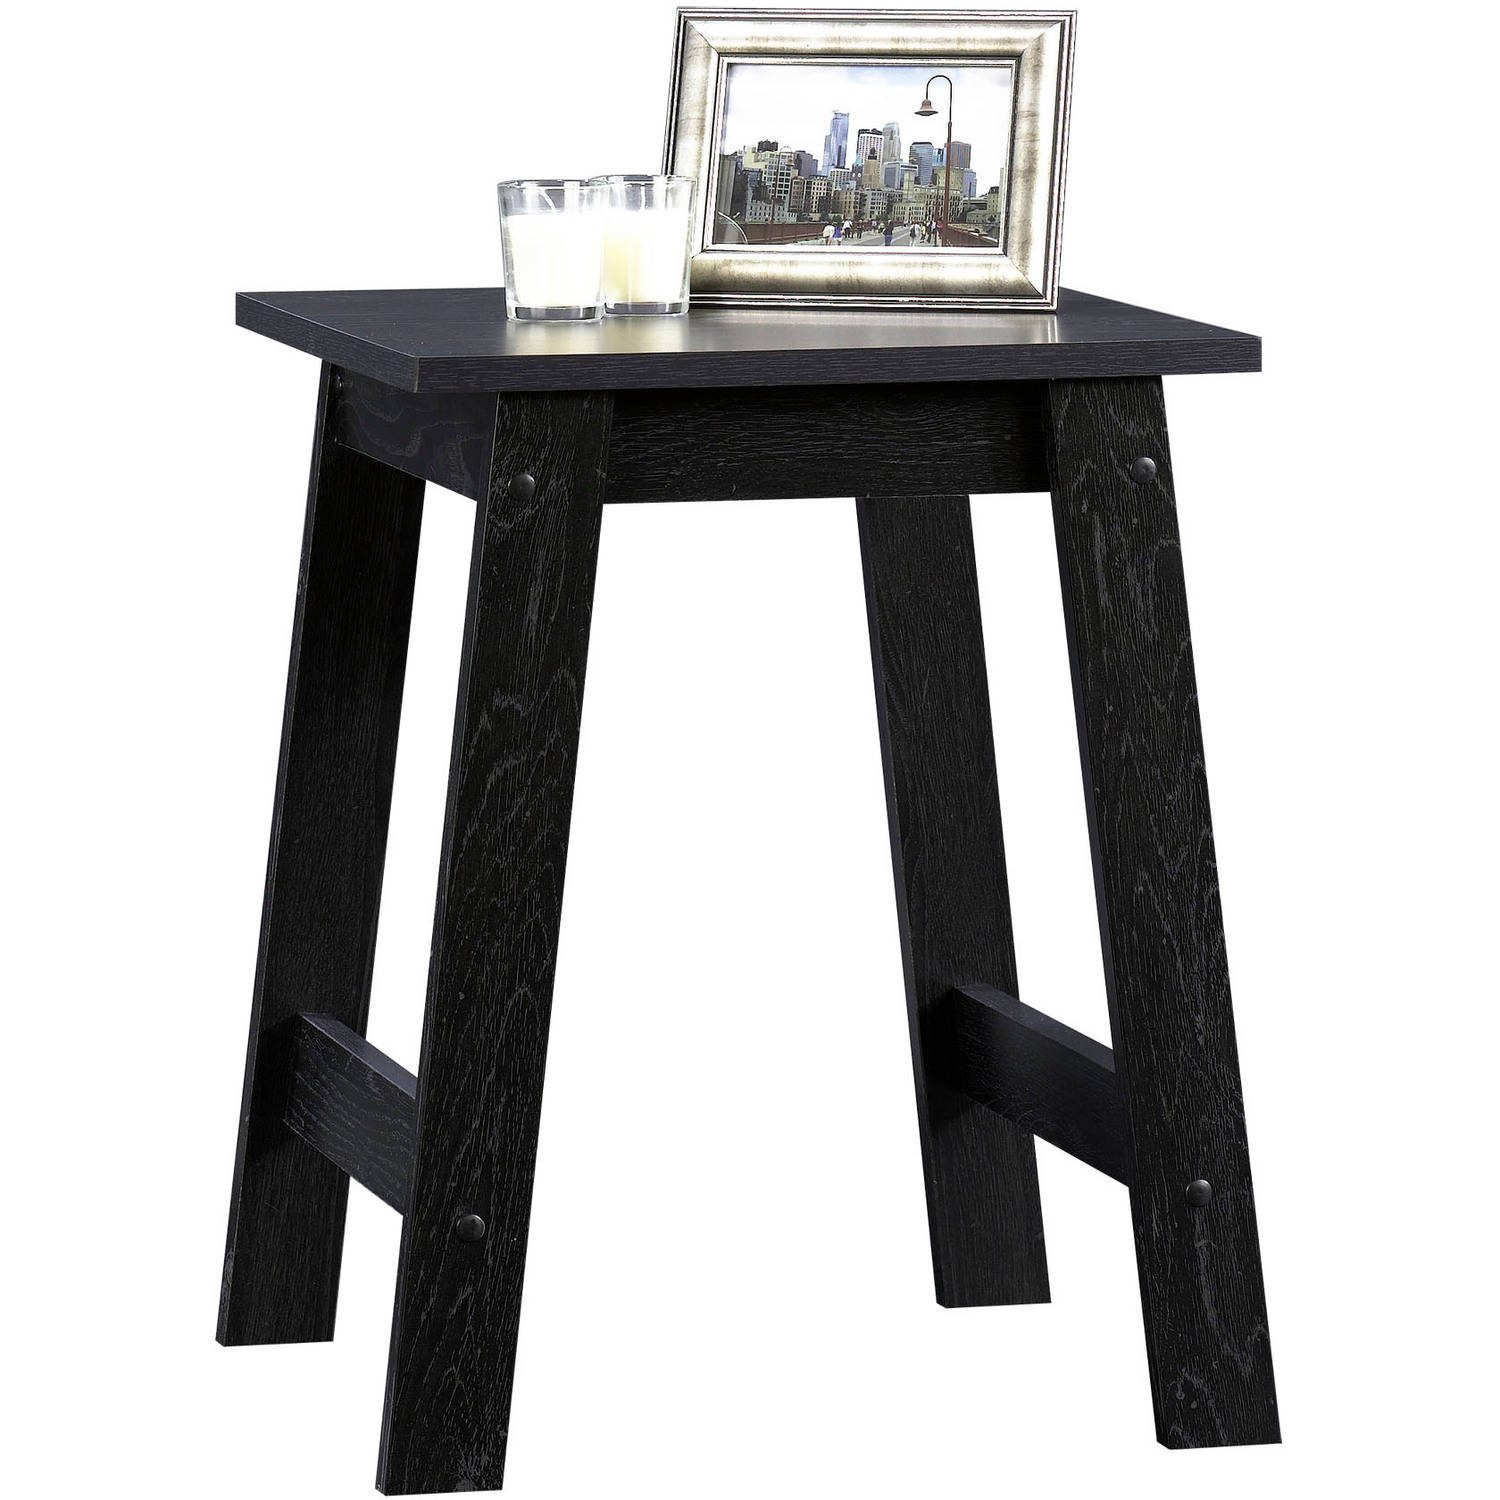 type writer intl get unlimited furniture delivery from crate better homes and gardens end table with drawer accent rustic gray barrel for flat financing available find coffee